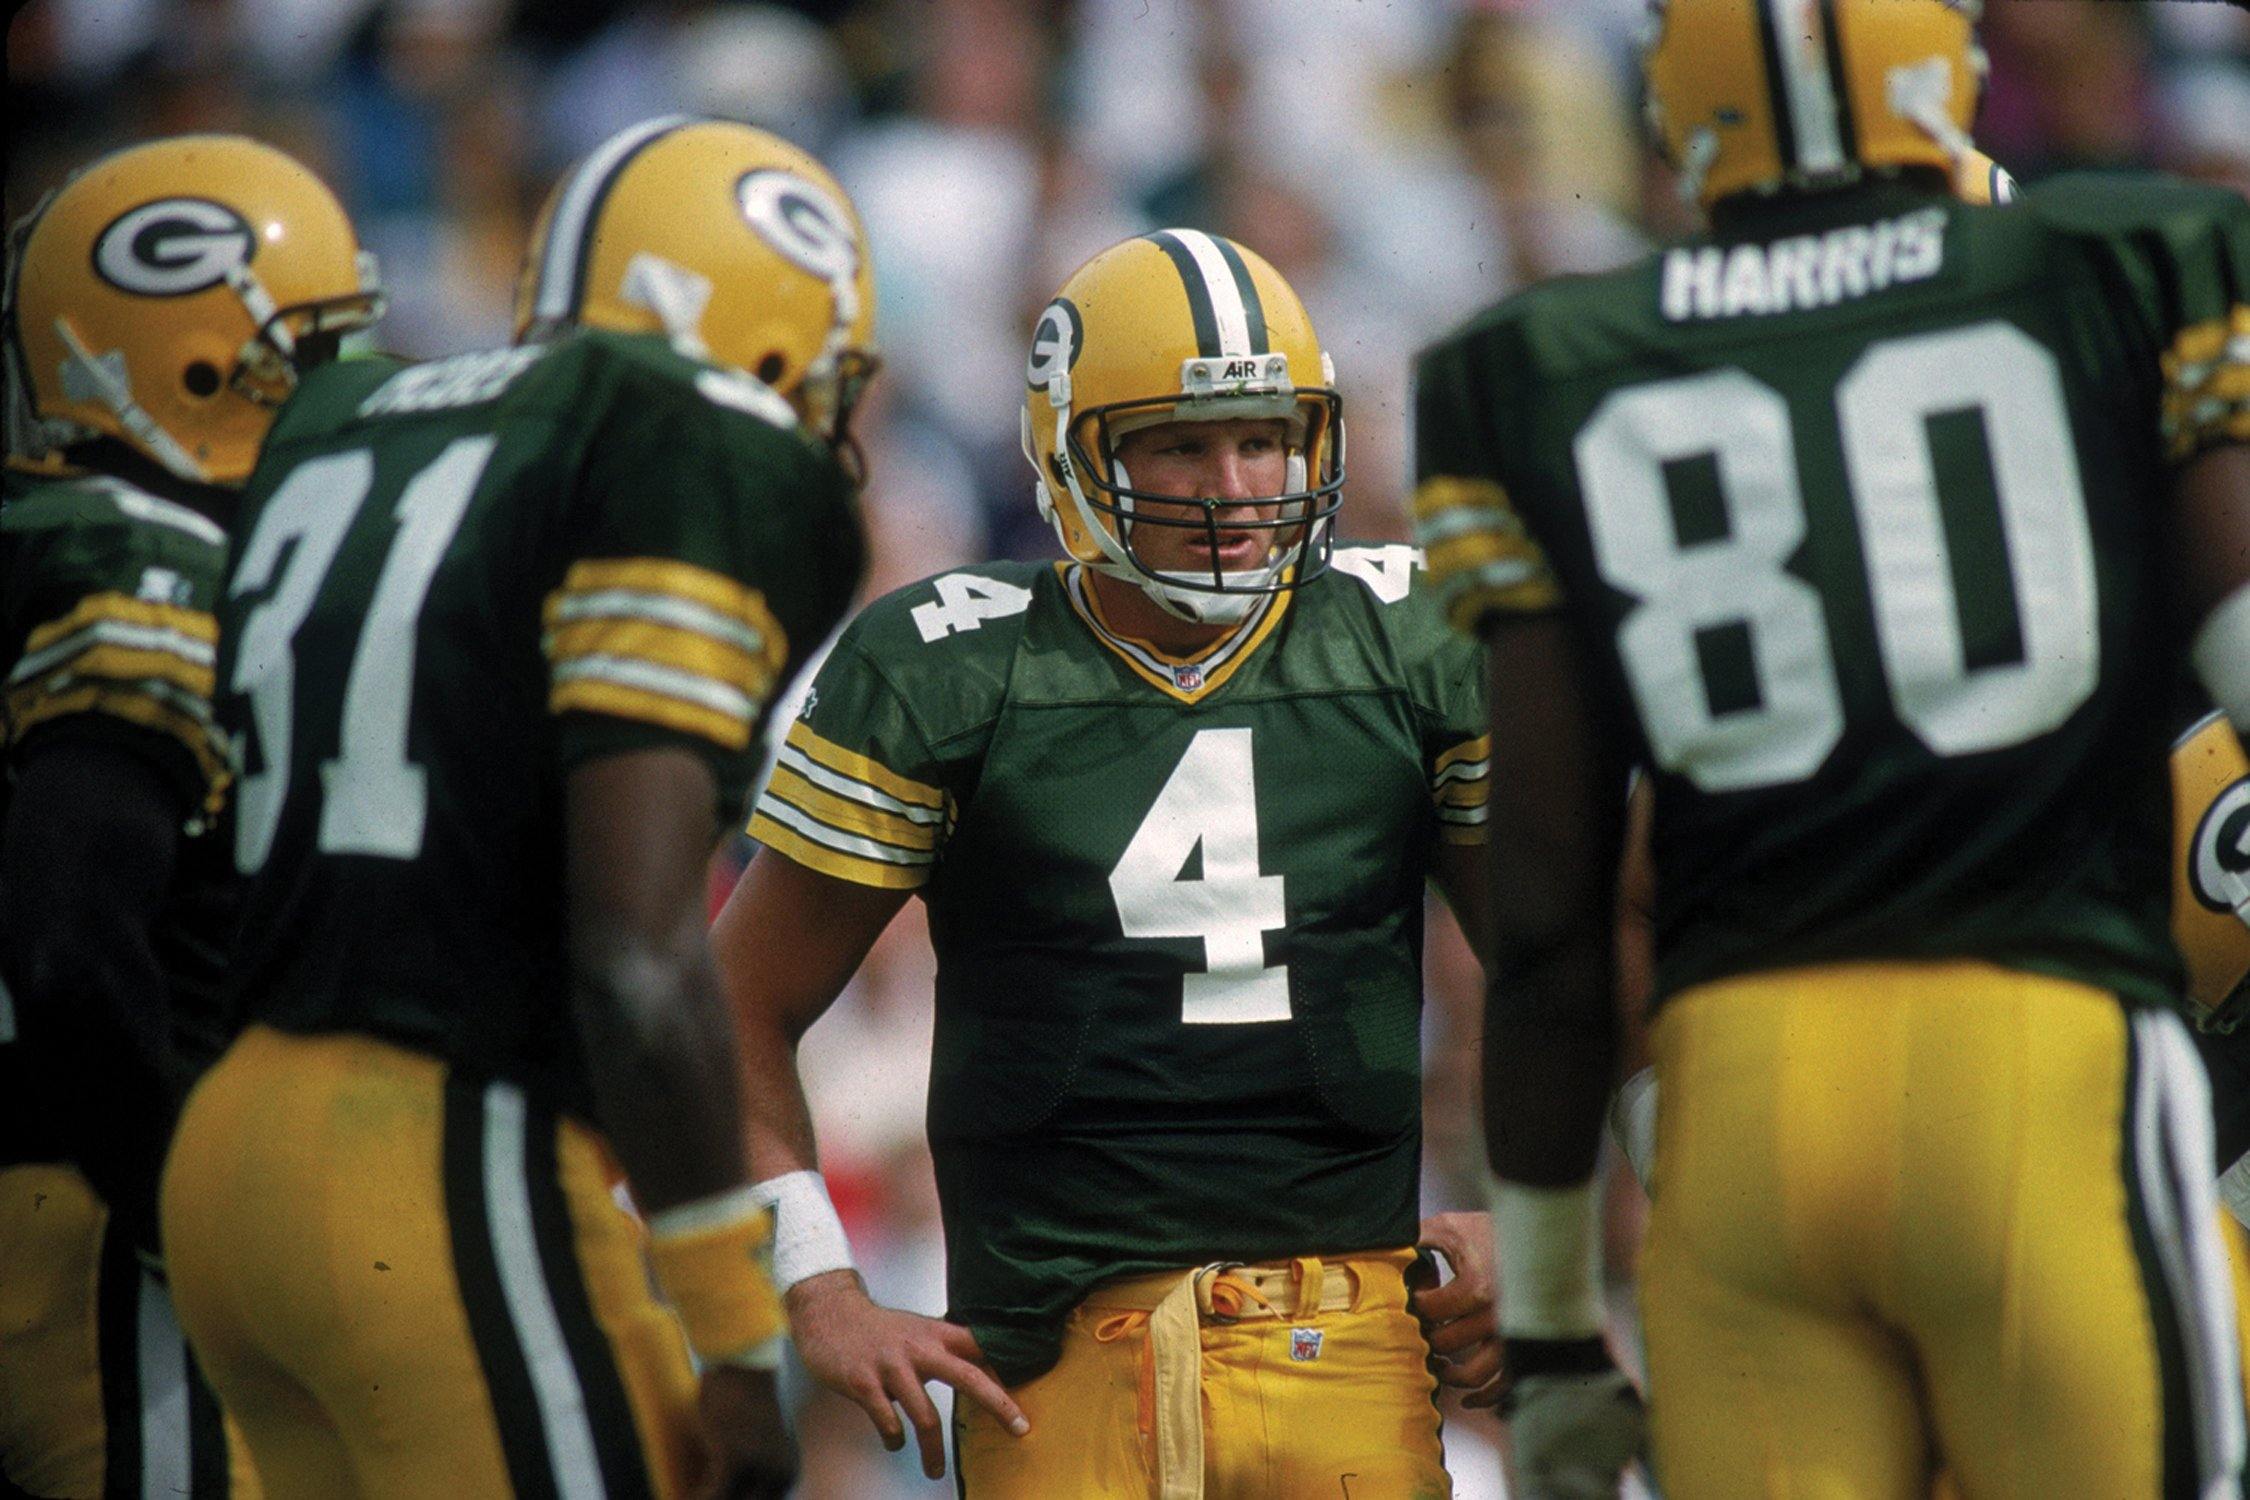 Leaders of the Pack: Starr, Favre, Rodgers and Why Green Bay's Quarterback  Trio is the Best in NFL History: Rob Reischel, Ron Wolf, Brett Favre: ...